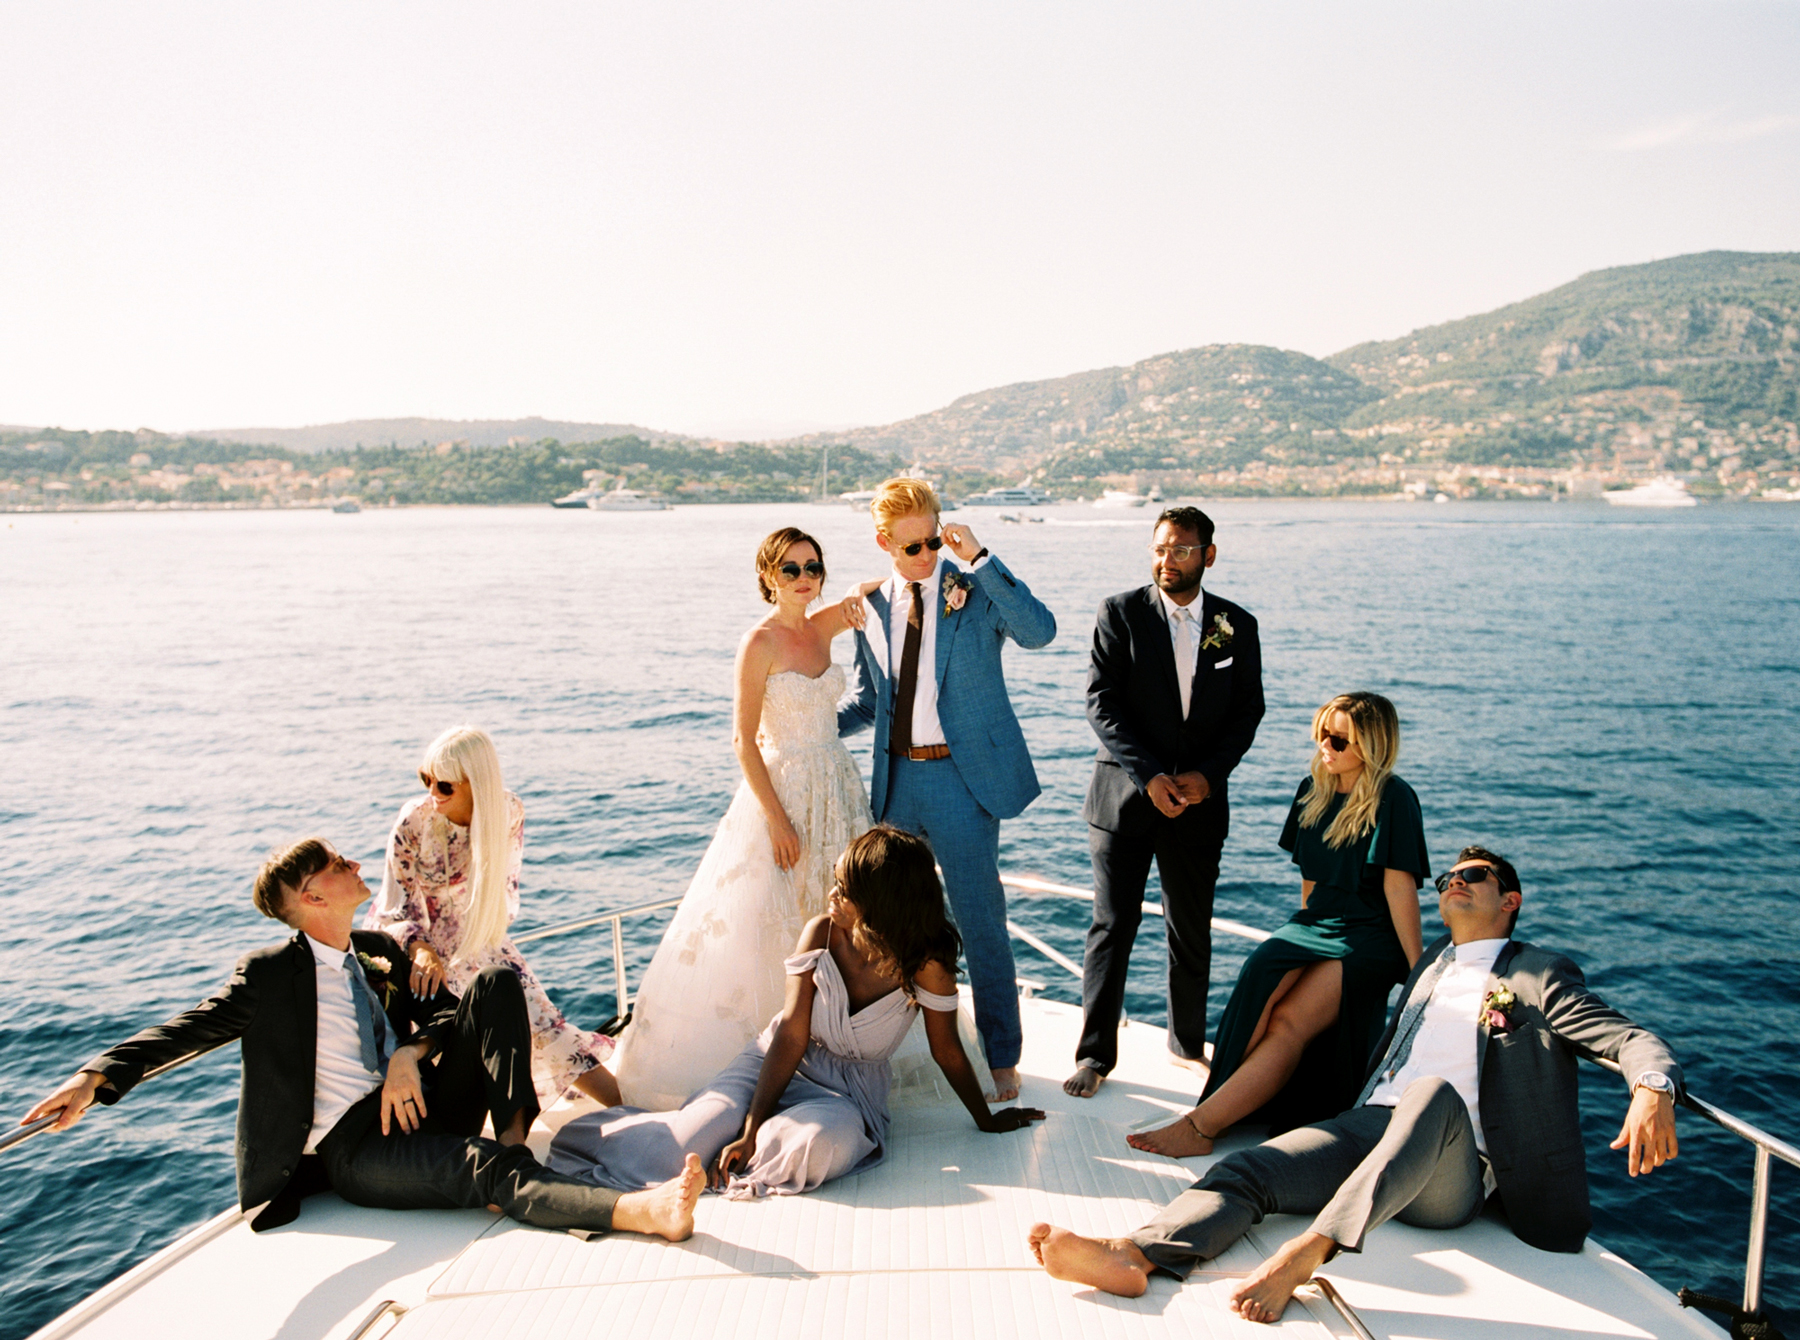 bride and groom with six person wedding party on boat